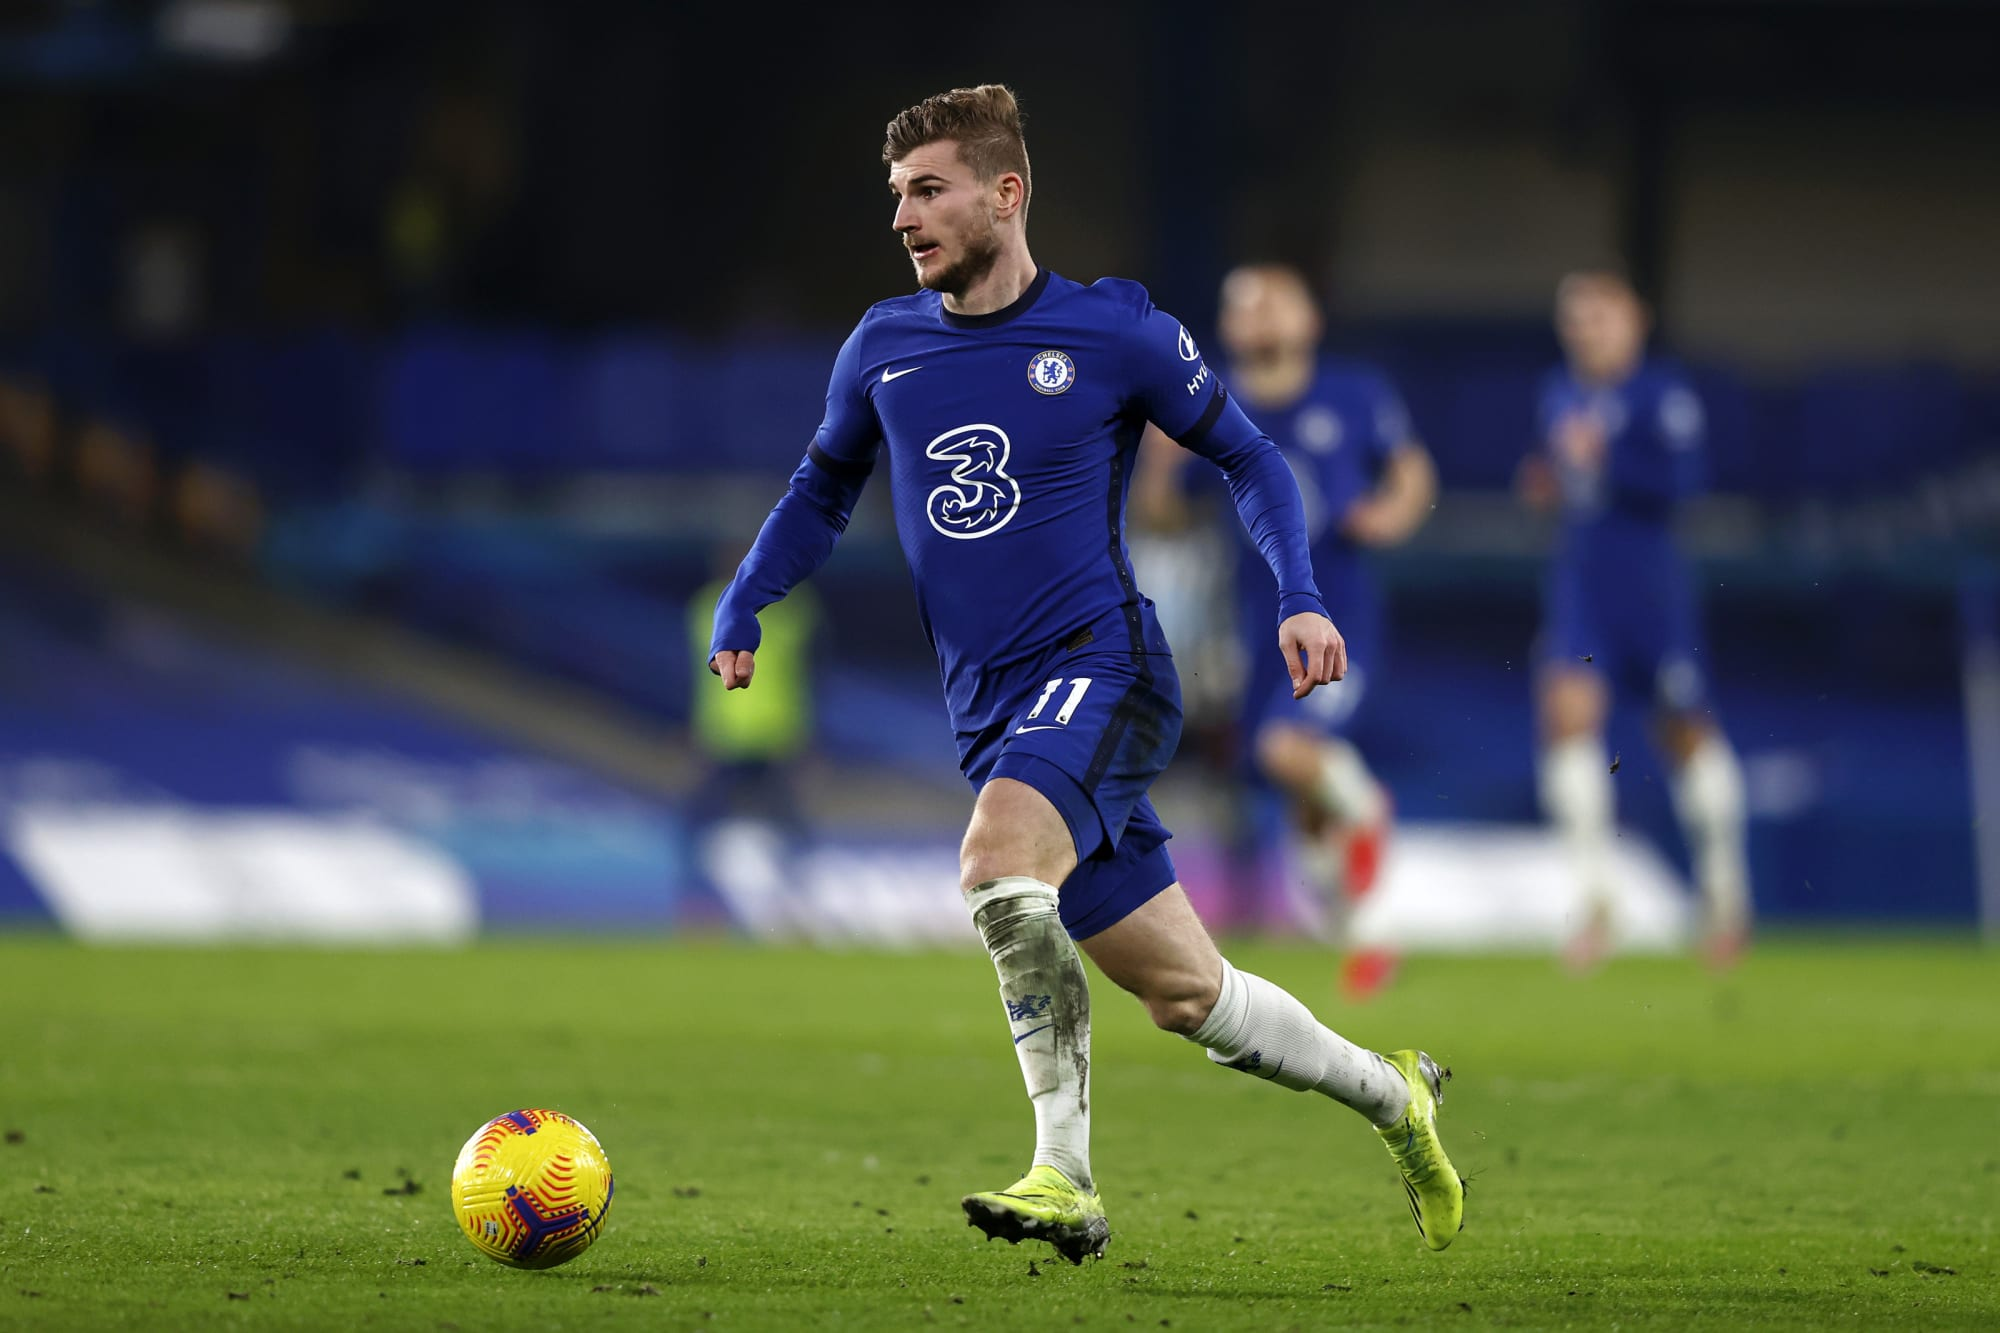 Chelsea's Werner may be profligate, but that isn't the problem (Pt. 1)